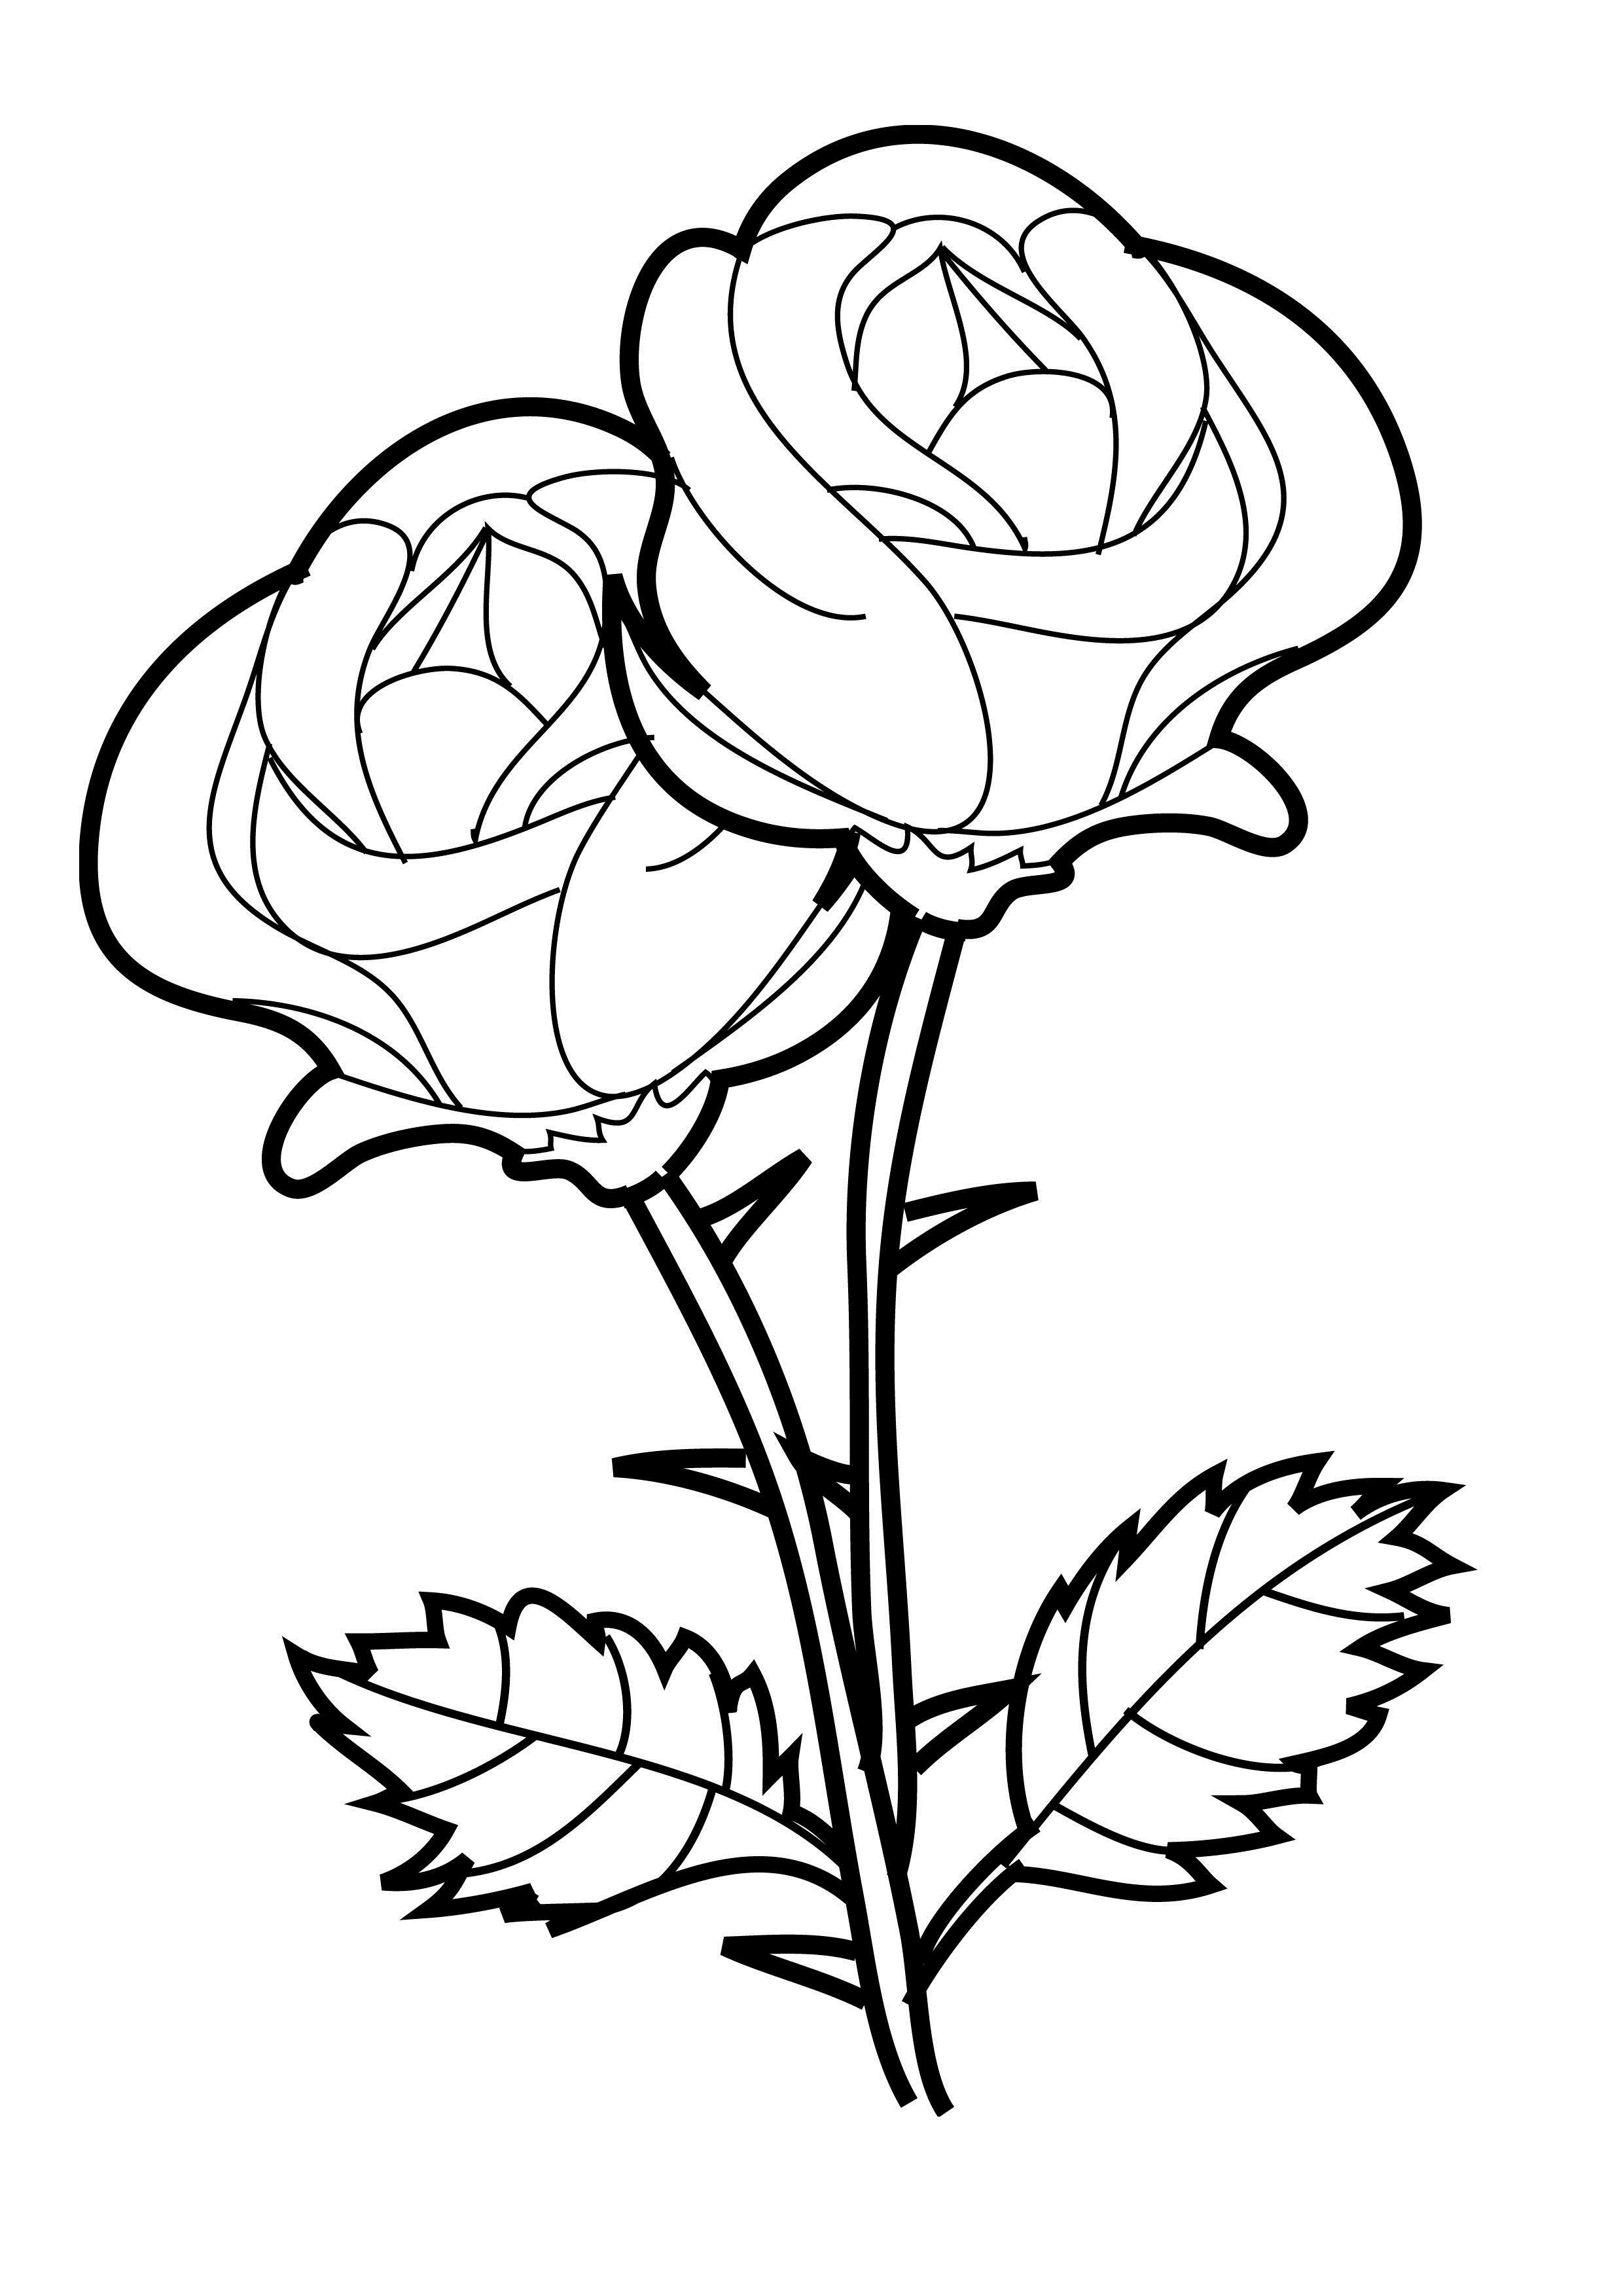 coloring page rose rose color clipart 20 free cliparts download images on rose page coloring